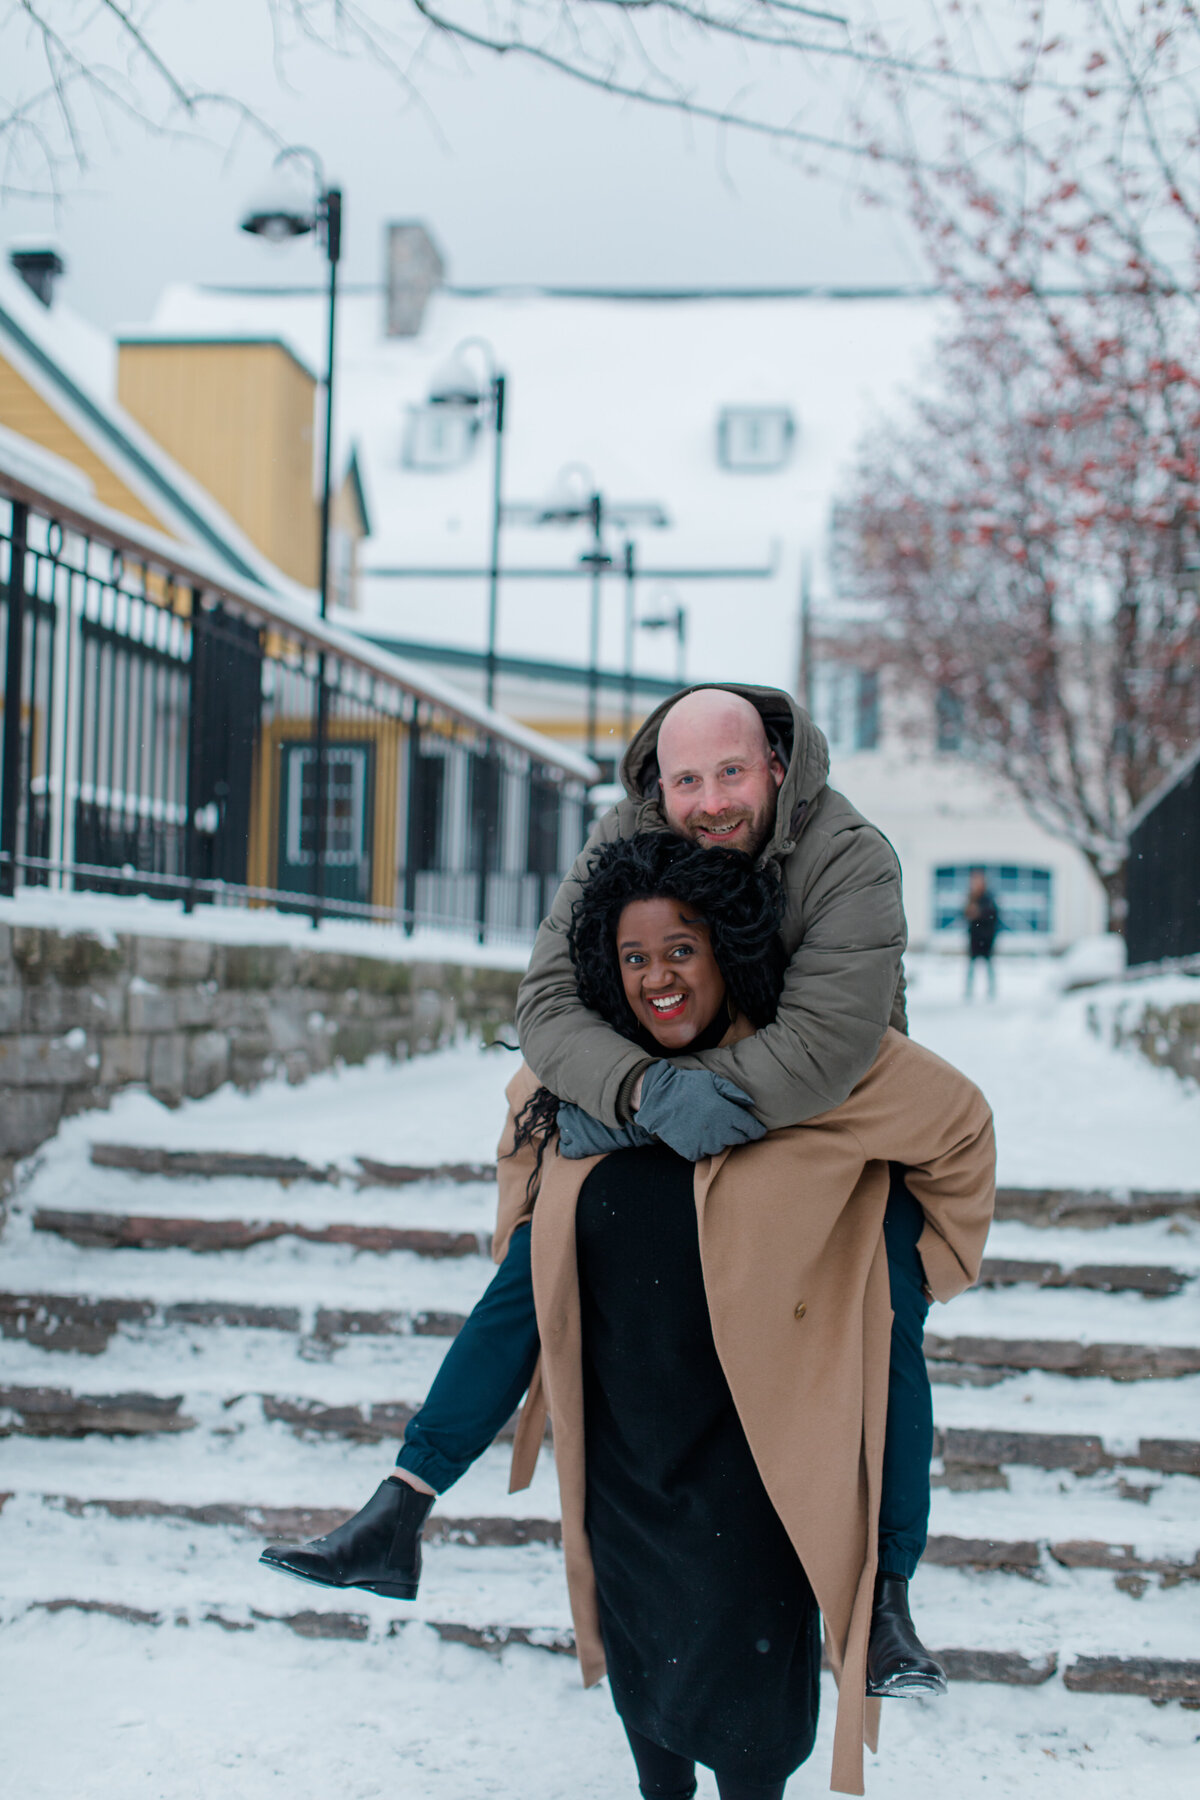 tremblant-winter-mountainside-engagement-session-grey-loft-studio-tremblant-village-231